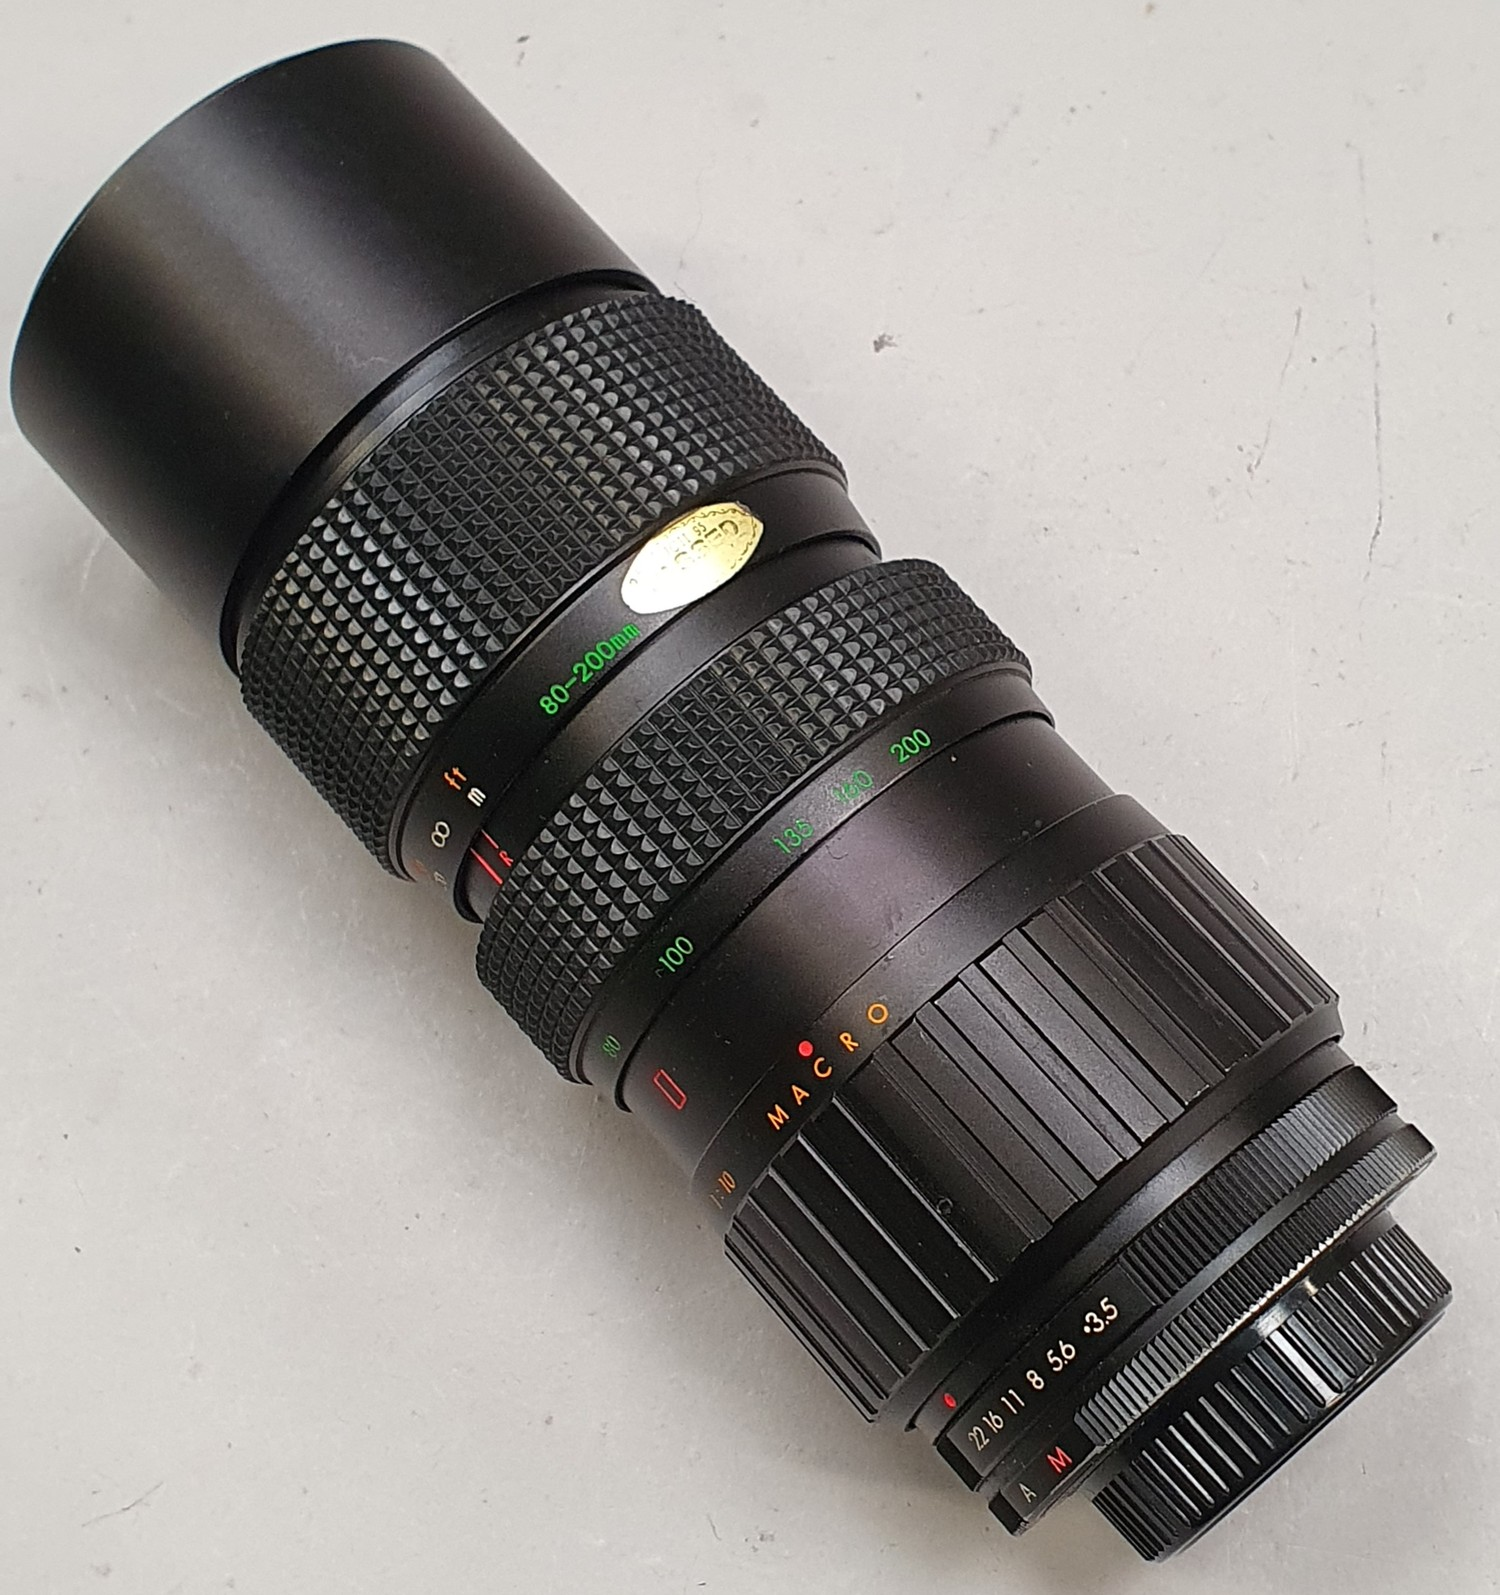 A collection of camera lenses to include Optomax, Nikon etc. - Image 9 of 9